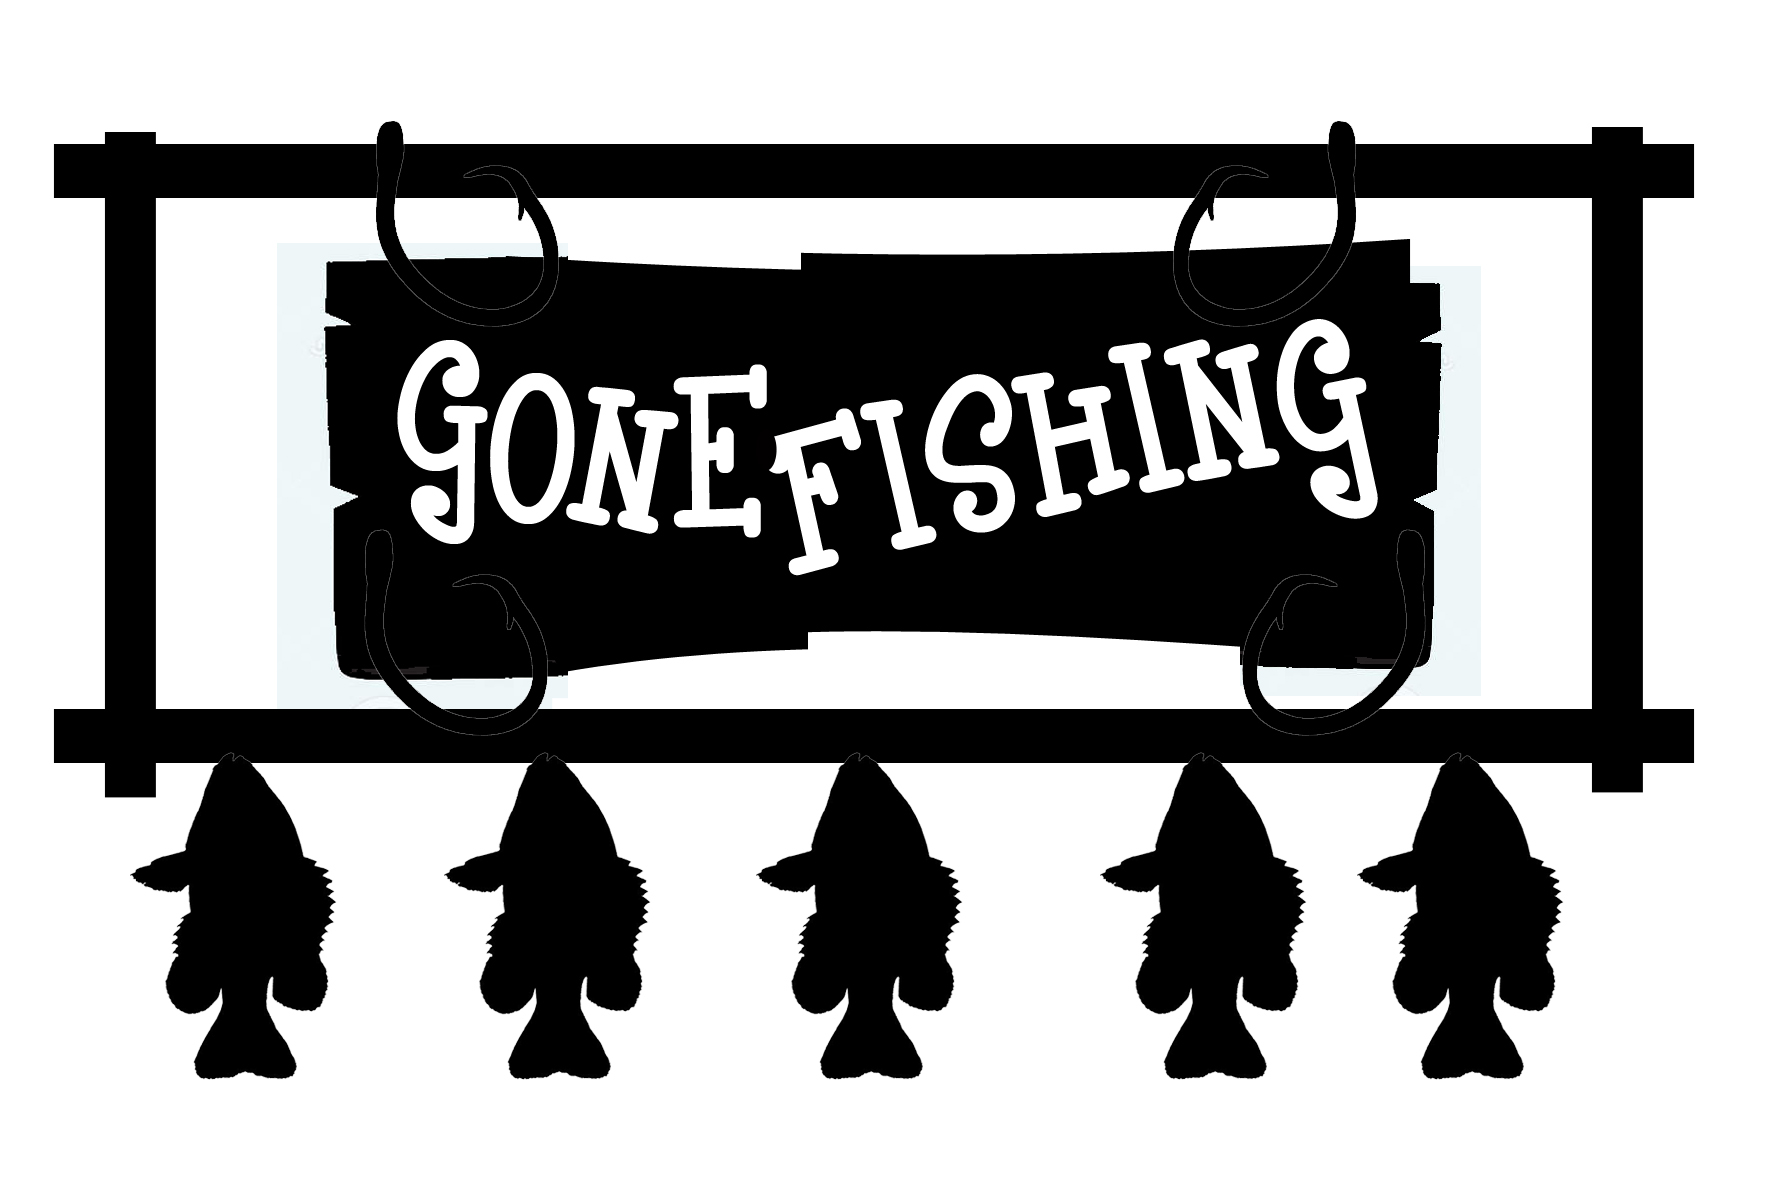 Gone fishing clipart free clip transparent library Free Gone Fishing Cliparts, Download Free Clip Art, Free Clip Art on ... clip transparent library